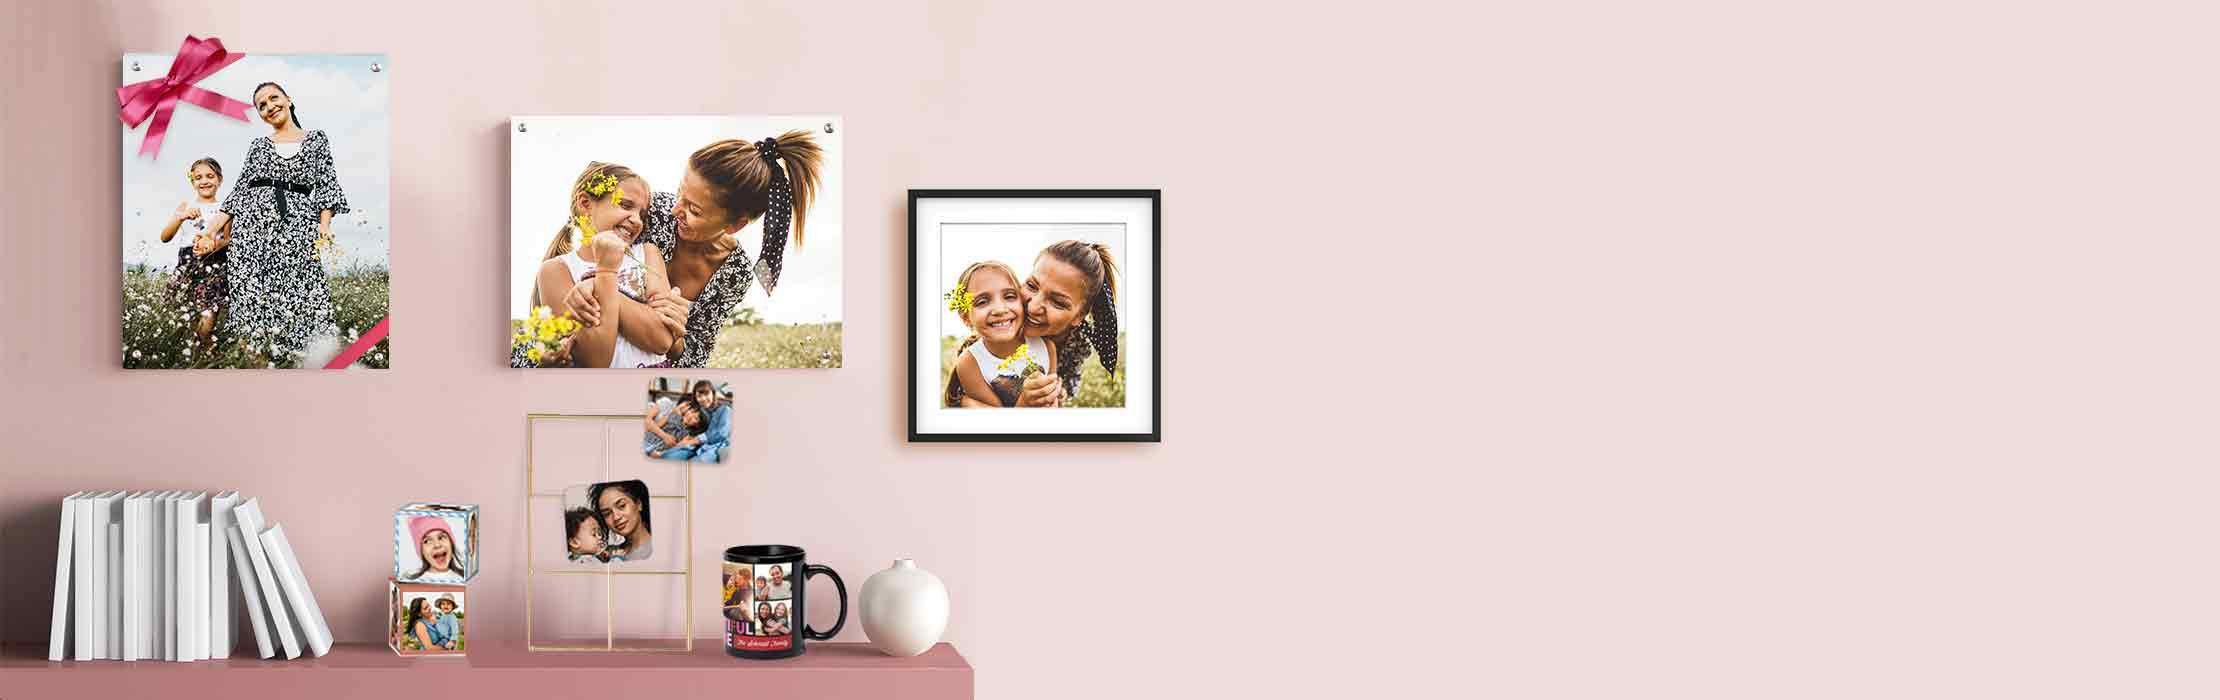 Give Mom a piece of your heart. Turn her favorite memories into treasured keepsakes.